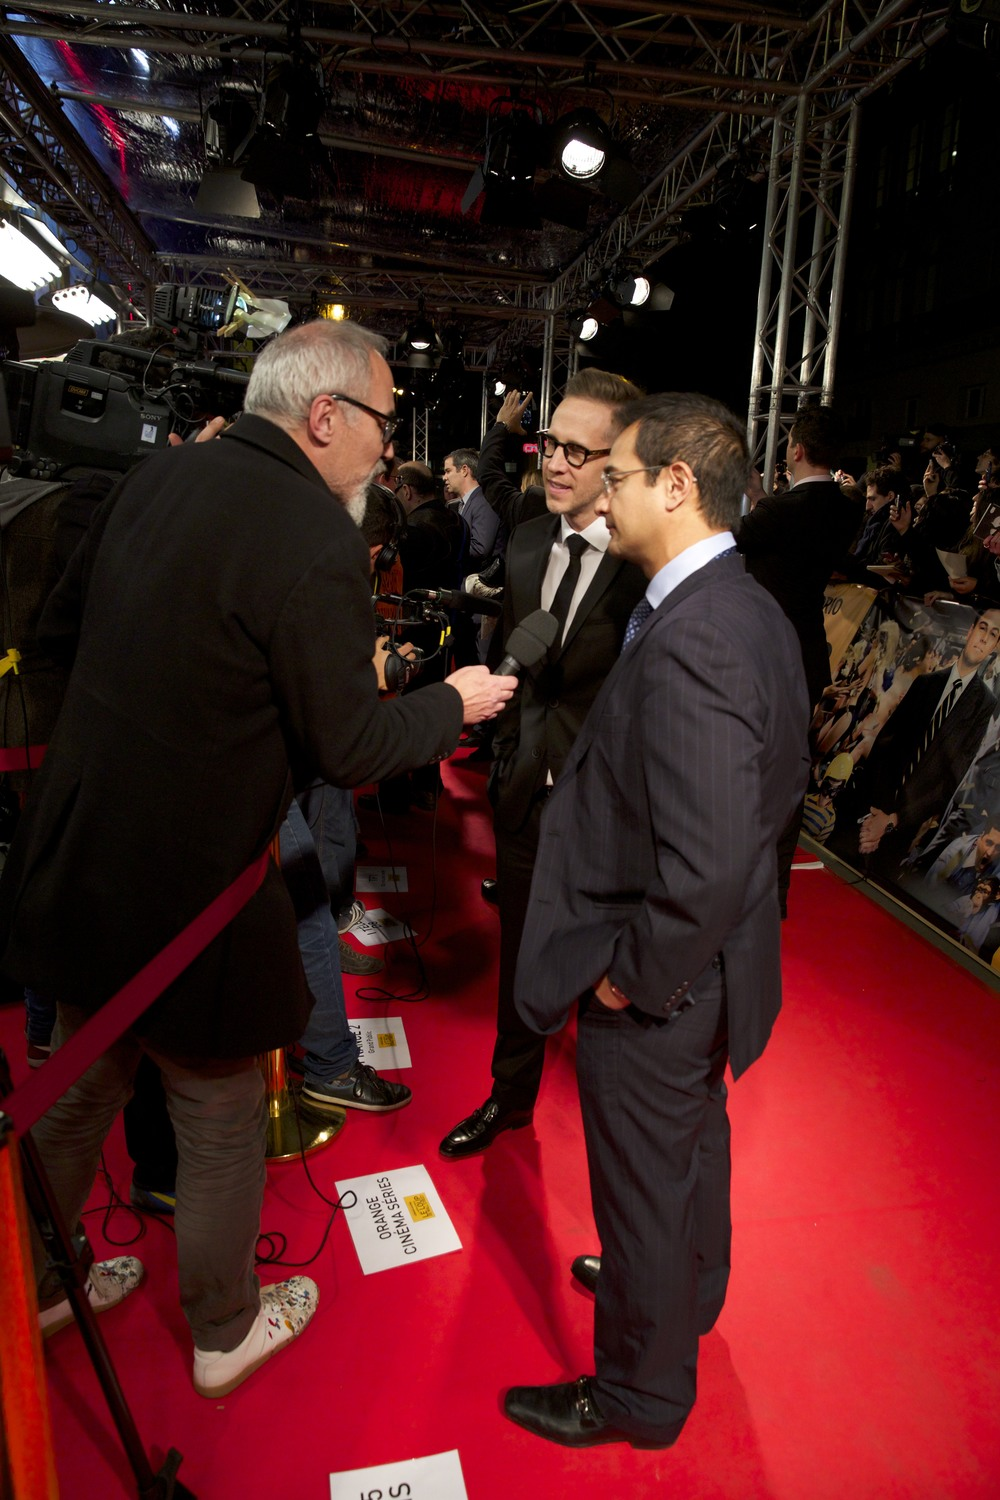 joey-mcfarland-riza-aziz-interviewd-on-the-red-carpet-paris-premiere-the-wolf-of-wall-street.jpg